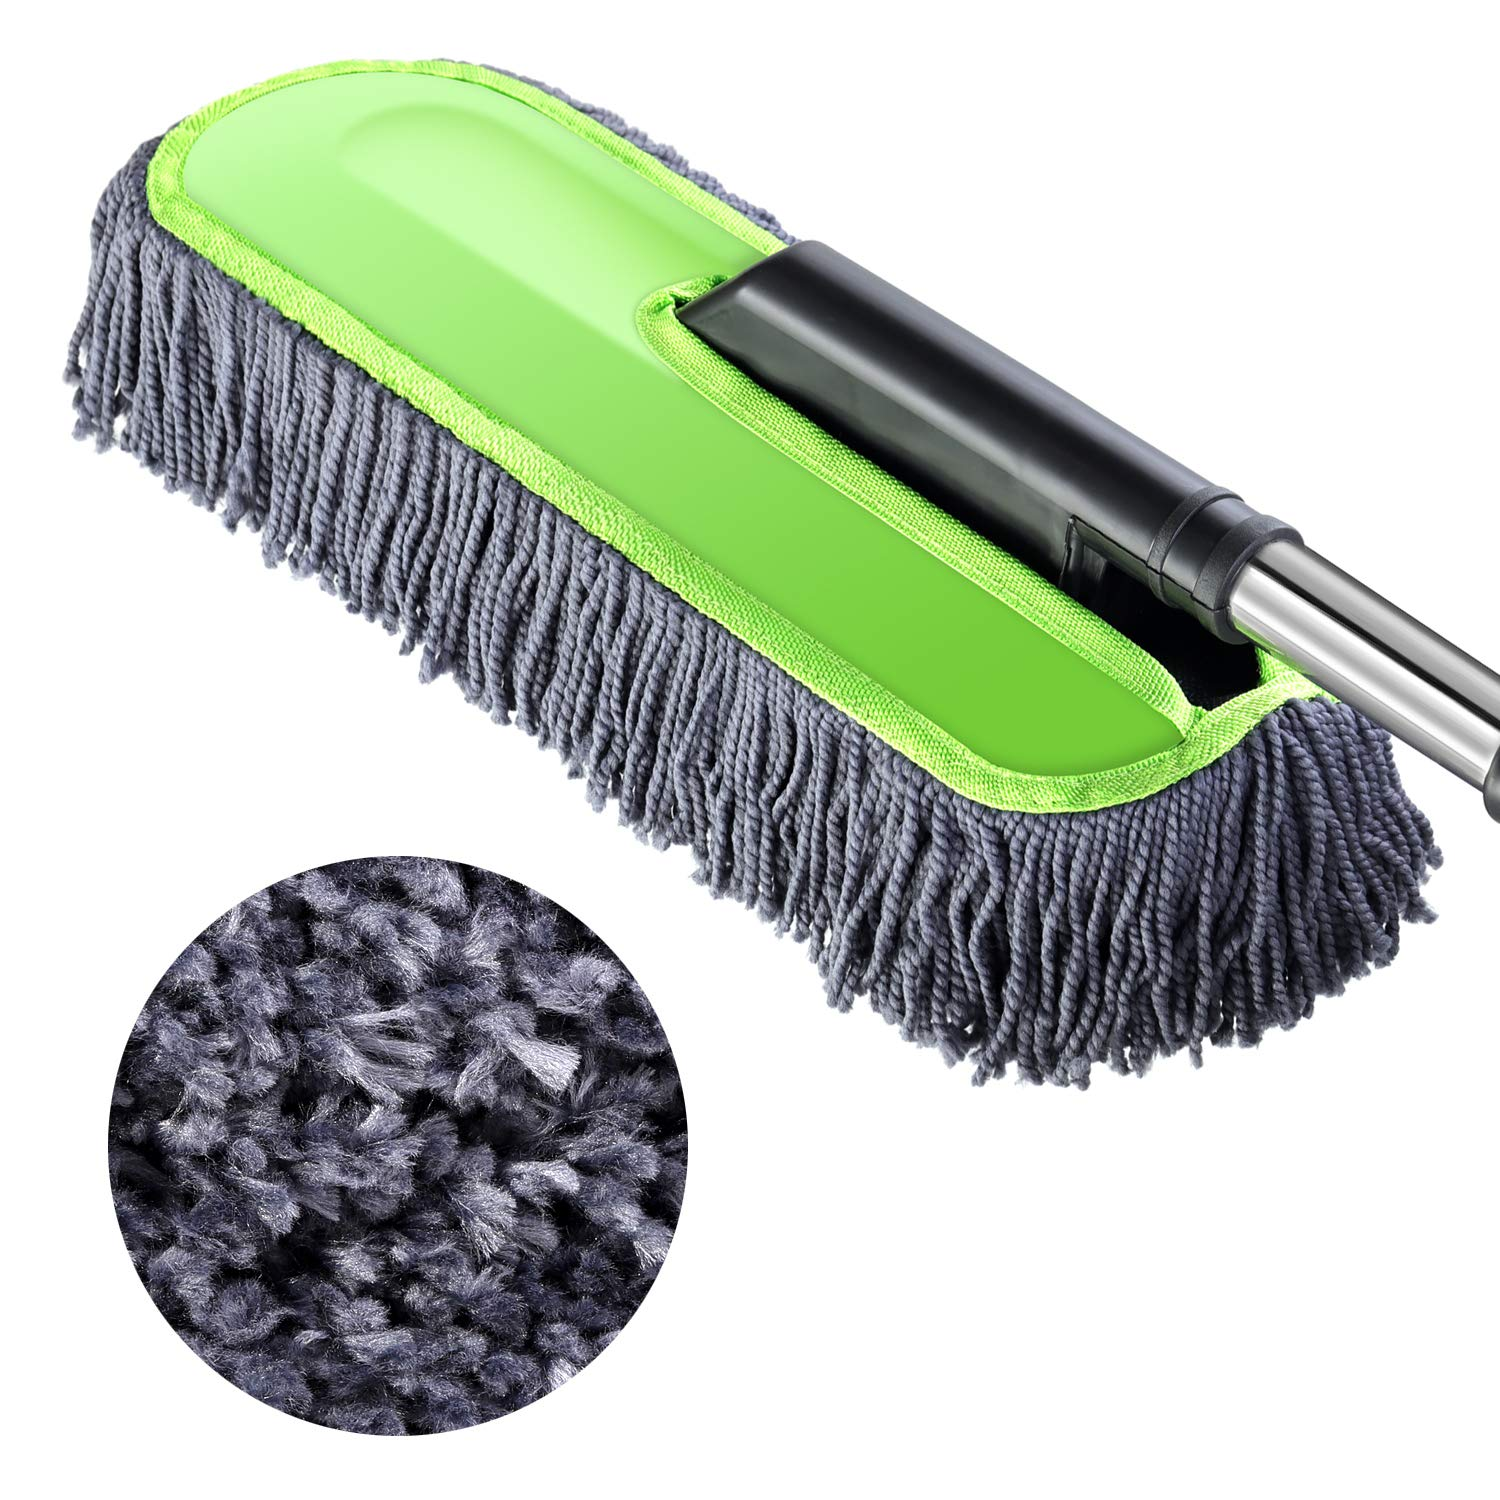 Happy Road Car Duster, High Decontamination Car Brush Duster, Car Microfiber Duster with Extendable Handle - Exterior/Interior Use - Lint Free - Scratch Free